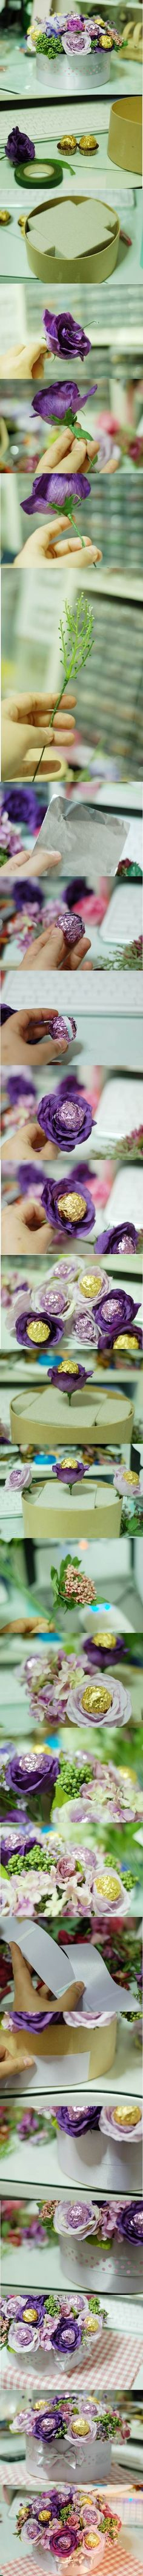 DIY Valentine's Day Chocolate Flower Bouquet | iCreativeIdeas.com Like Us on Facebook == https://www.facebook.com/icreativeideas